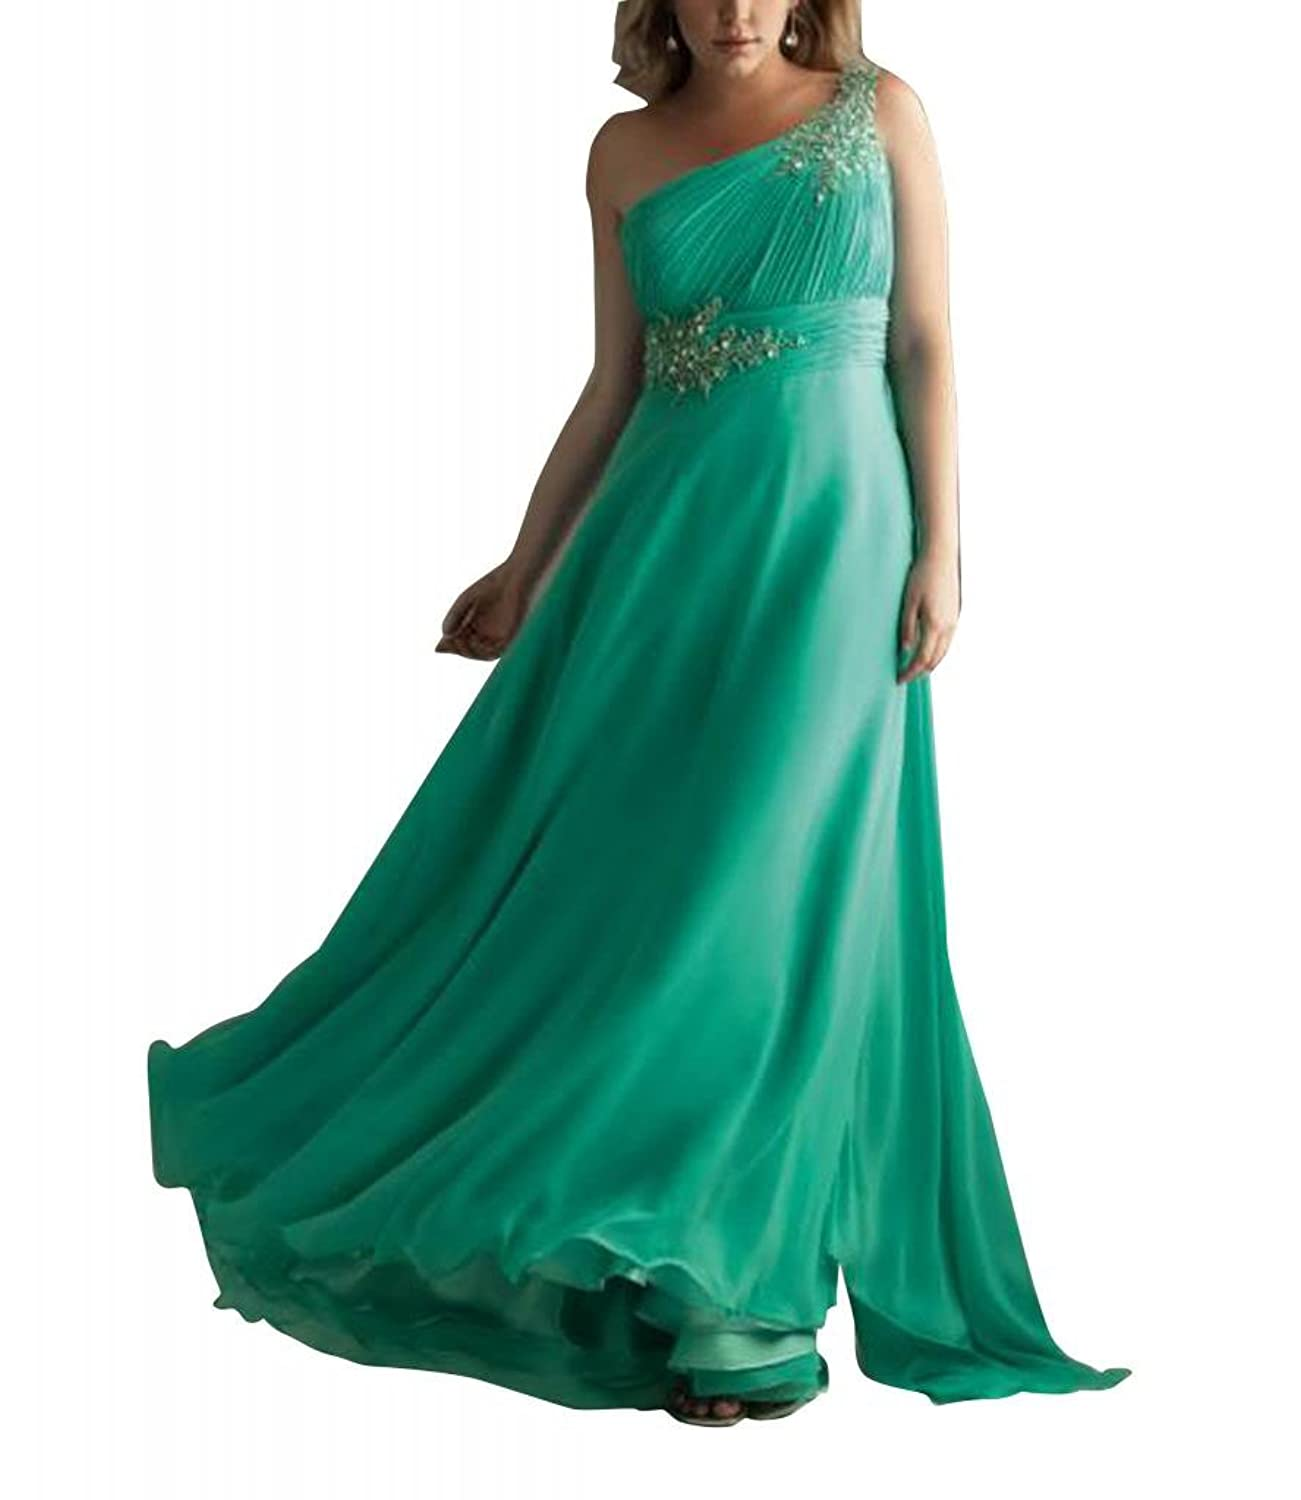 GEORGE BRIDE Sheath/ Column One Shoulder Floor Length Evening Dress With Beaded Appliques